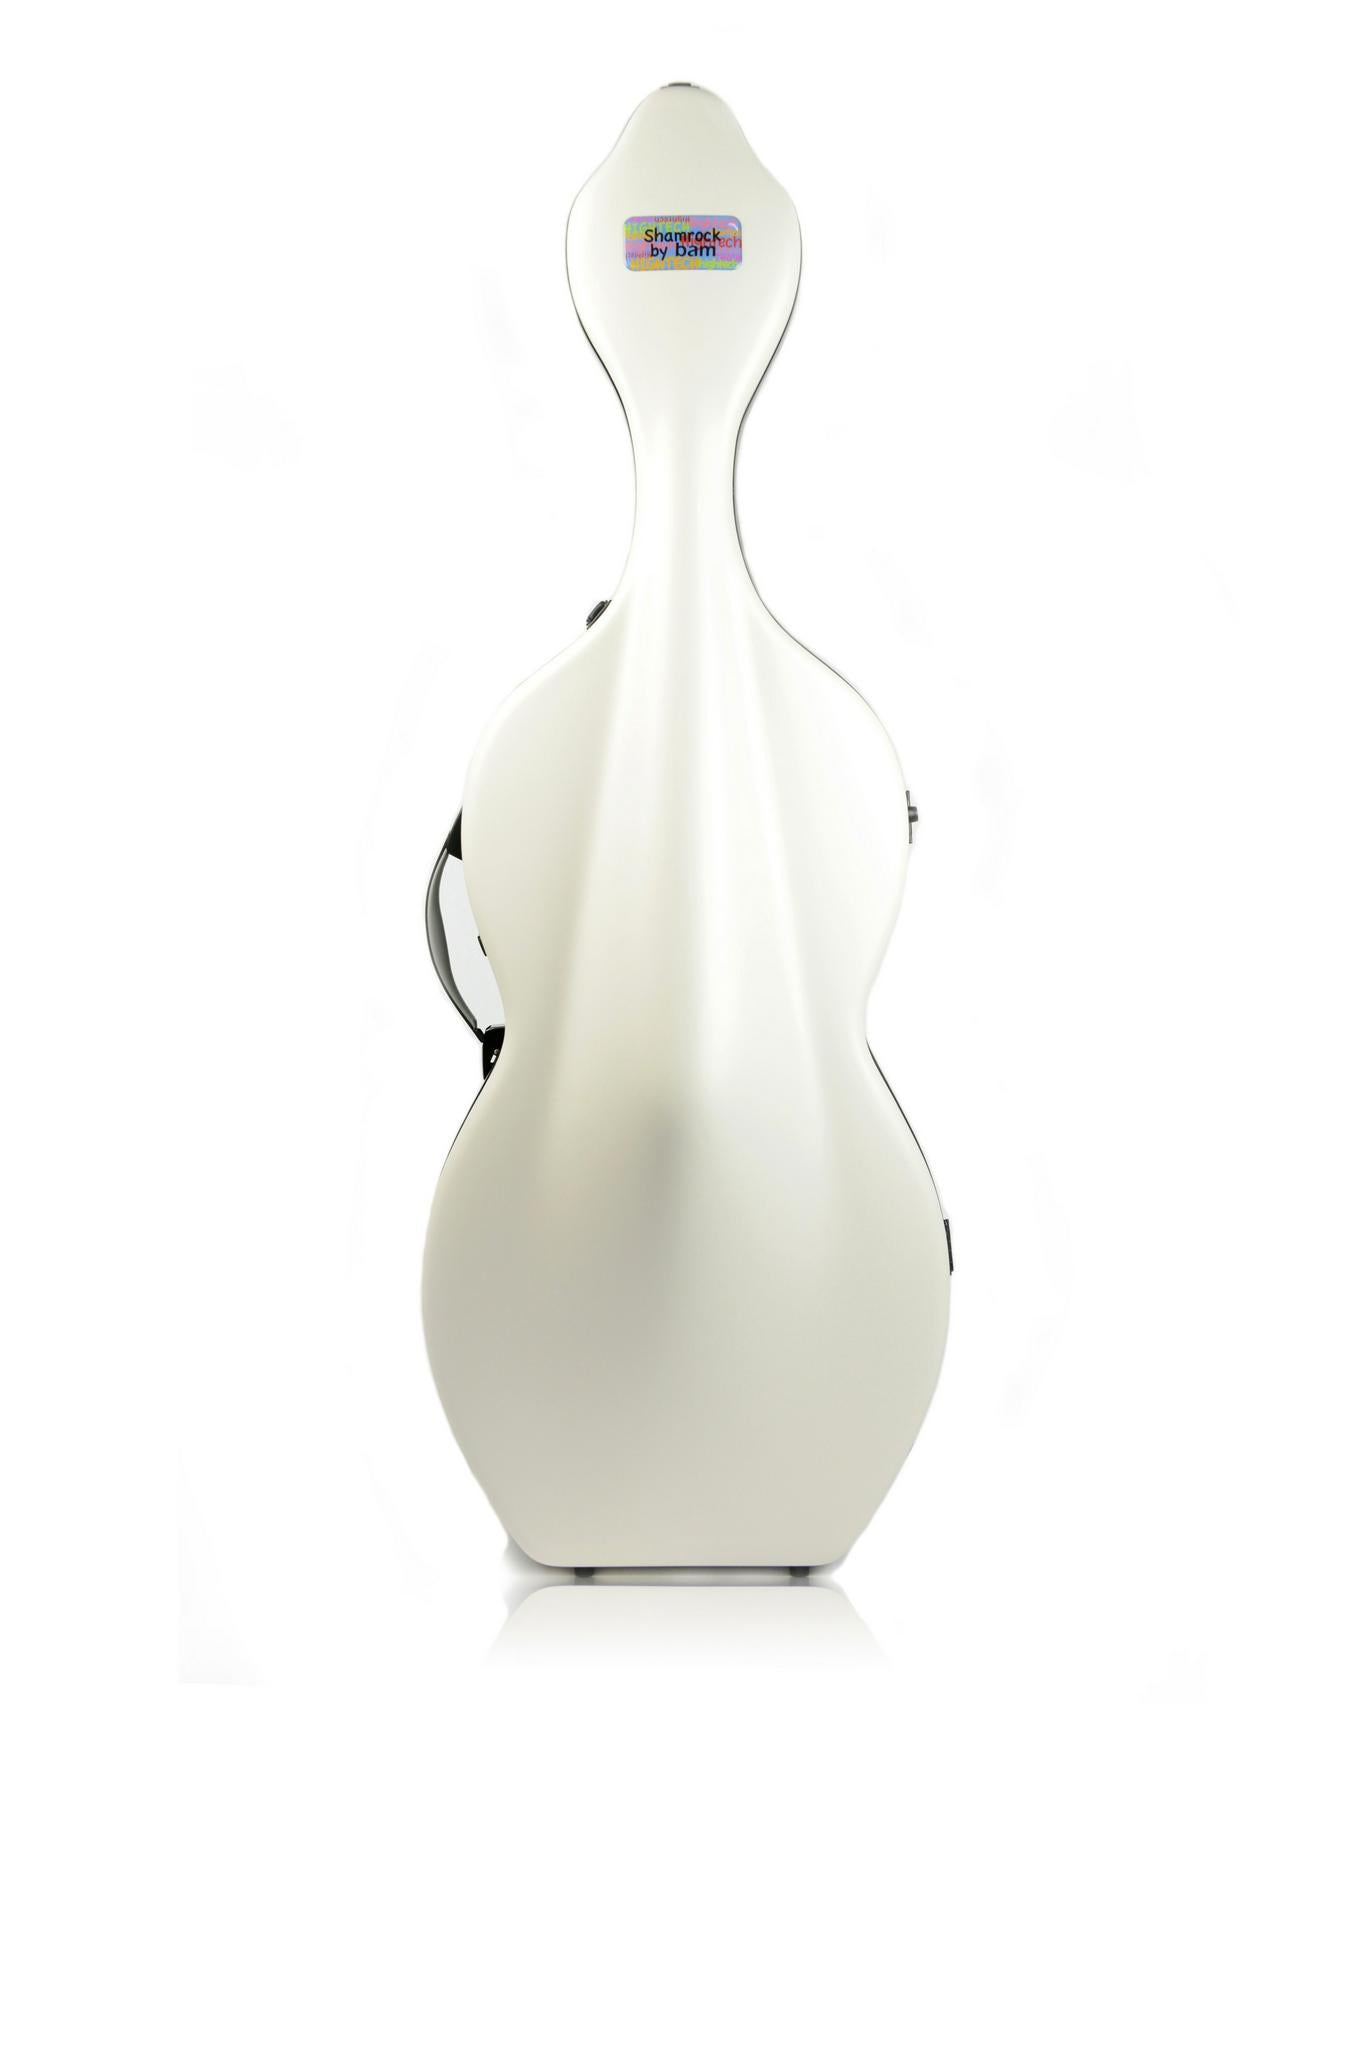 BAM SHAMROCK Hightech Cello Case